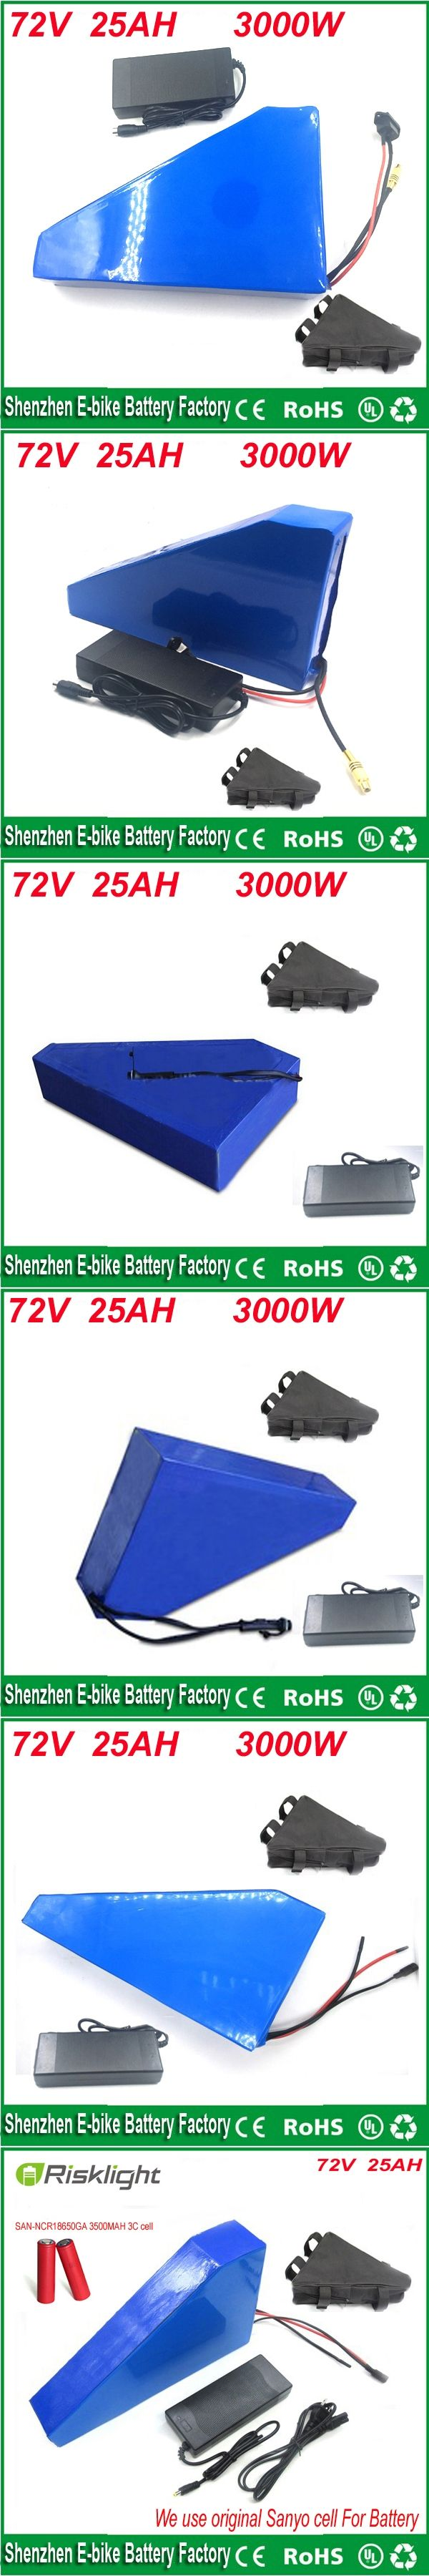 triangle lithium battery 72V 25Ah electric bike battery 72V 3000W electric bicycle battery with charger and bag For Sanyo cell